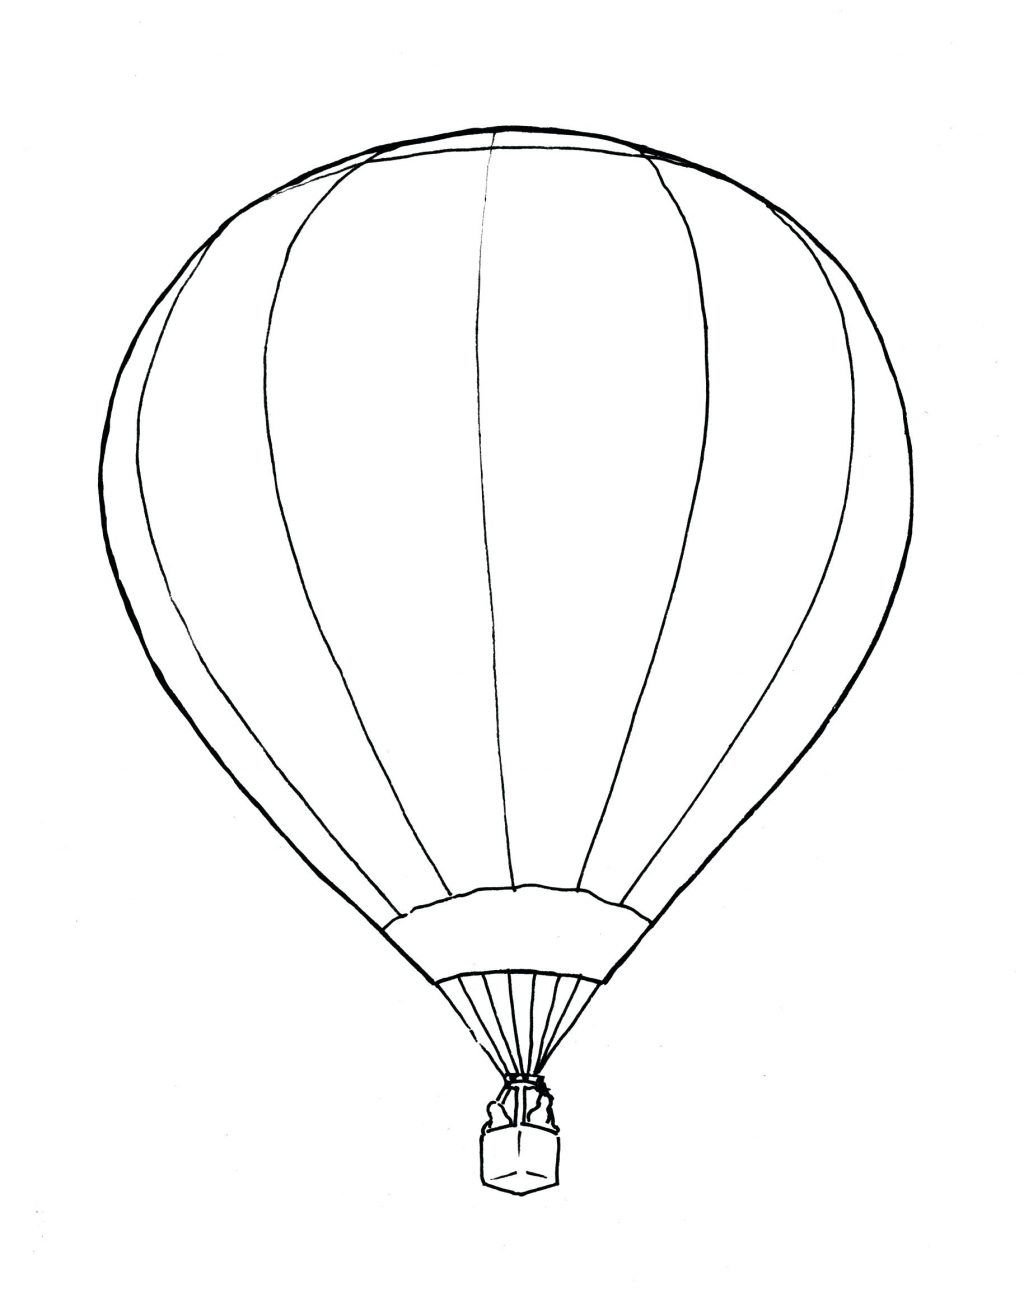 Hot Air Balloon Coloring Pages Collection Download Of Fresh Hot Air Balloons Coloring Pages Collection to Print